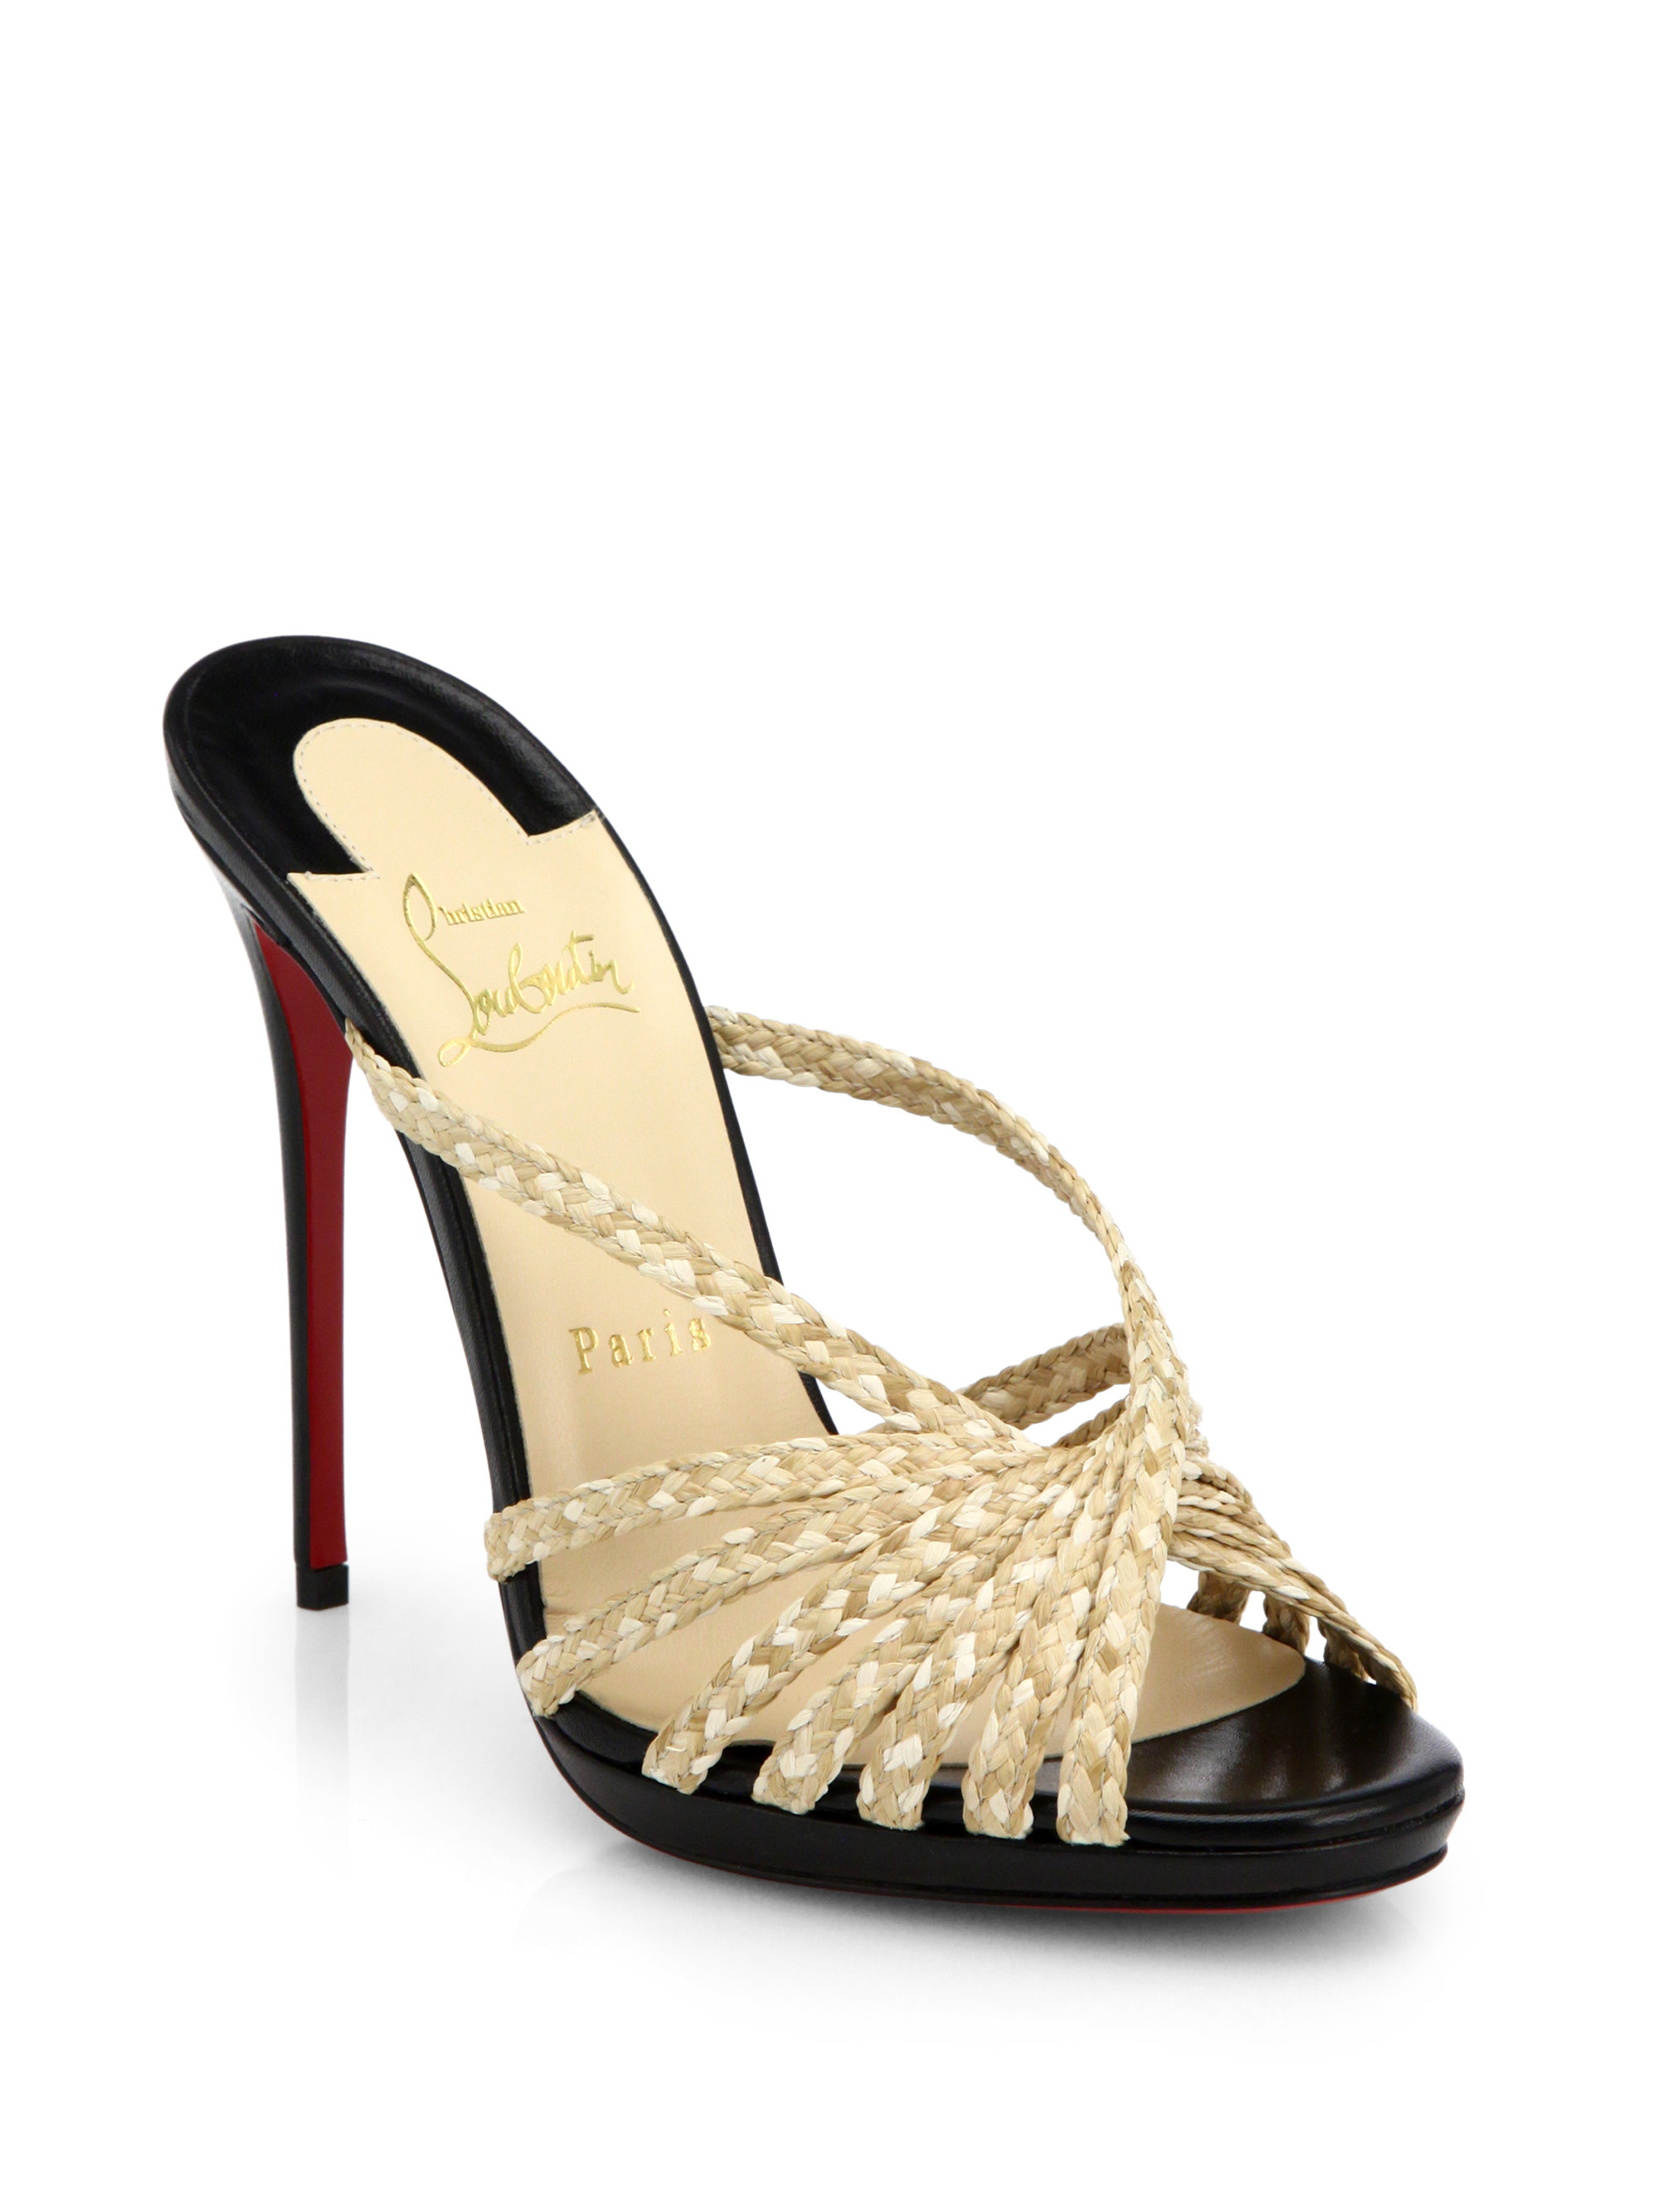 Christian Louboutin Patterned Leather Mules buy cheap fake caheEI